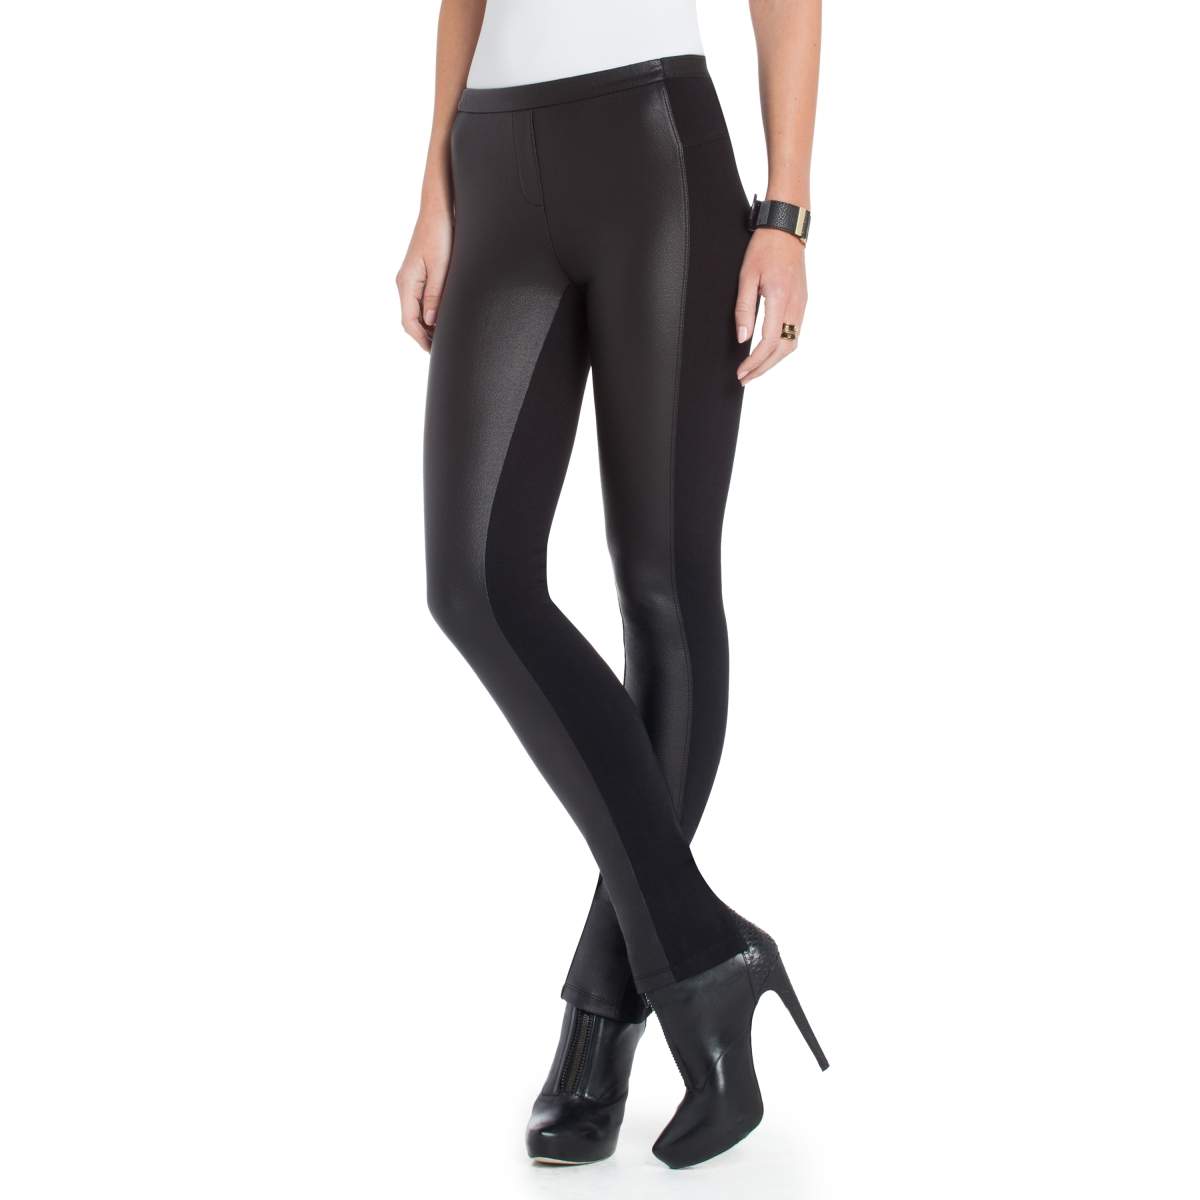 If you follow me on Instagram & Instagram stories then you know that I sport my leather leggings ALL the time and basically create outfits around them! I find that leggings – and specifically faux leather leggings – are flattering, comfortable, and stylish, so they naturally fit into my everyday rotation.